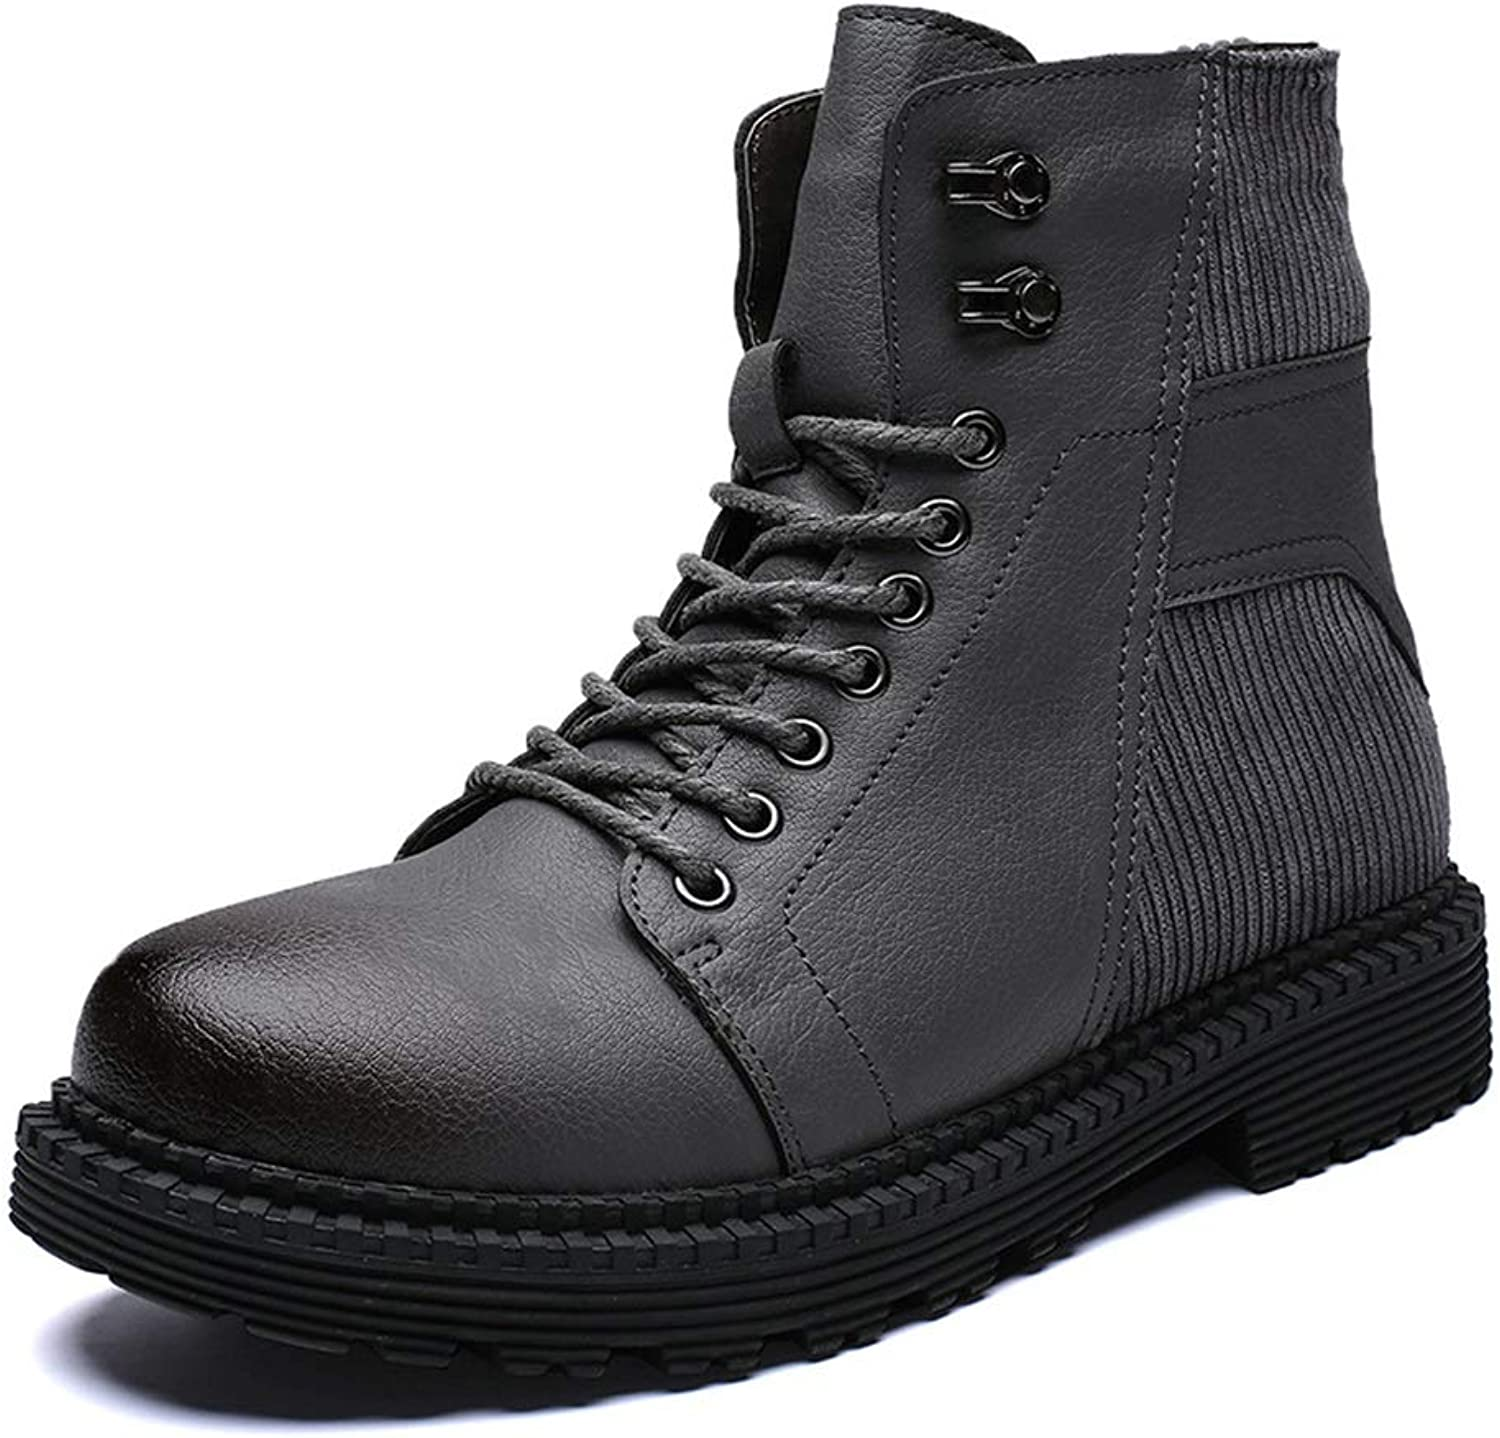 Men's Boots, Fall Winter New Retro Martin Boots Men's High-top Booties Casual Fashion Wild Large Size Boots 38-46 shoes